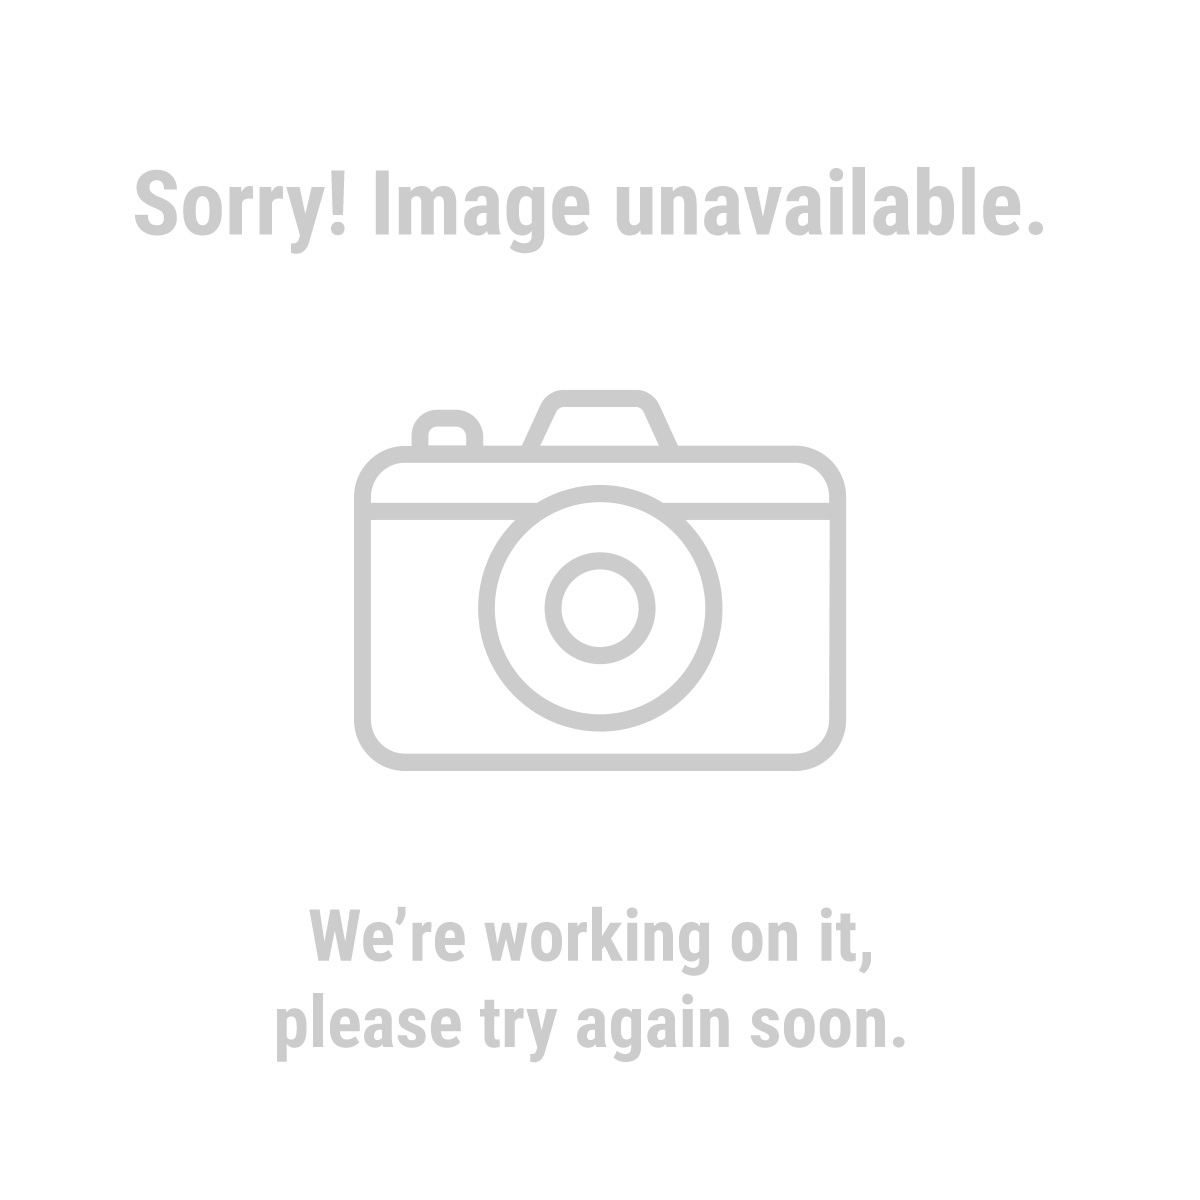 HFT® 37477 12 Ft. 16 Gauge Electrical Indoor Extension Cord